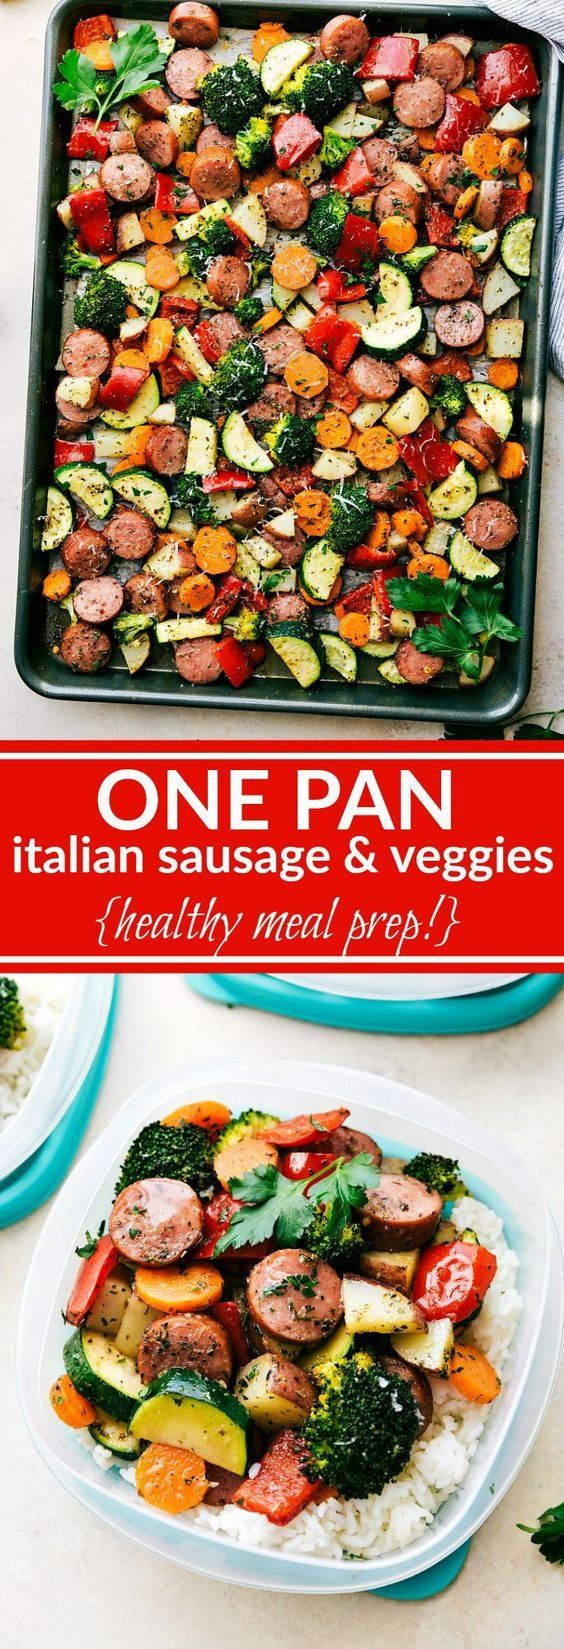 The less clean up the better! Make Sunday meal-prep easier with this tasty one pan recipe.